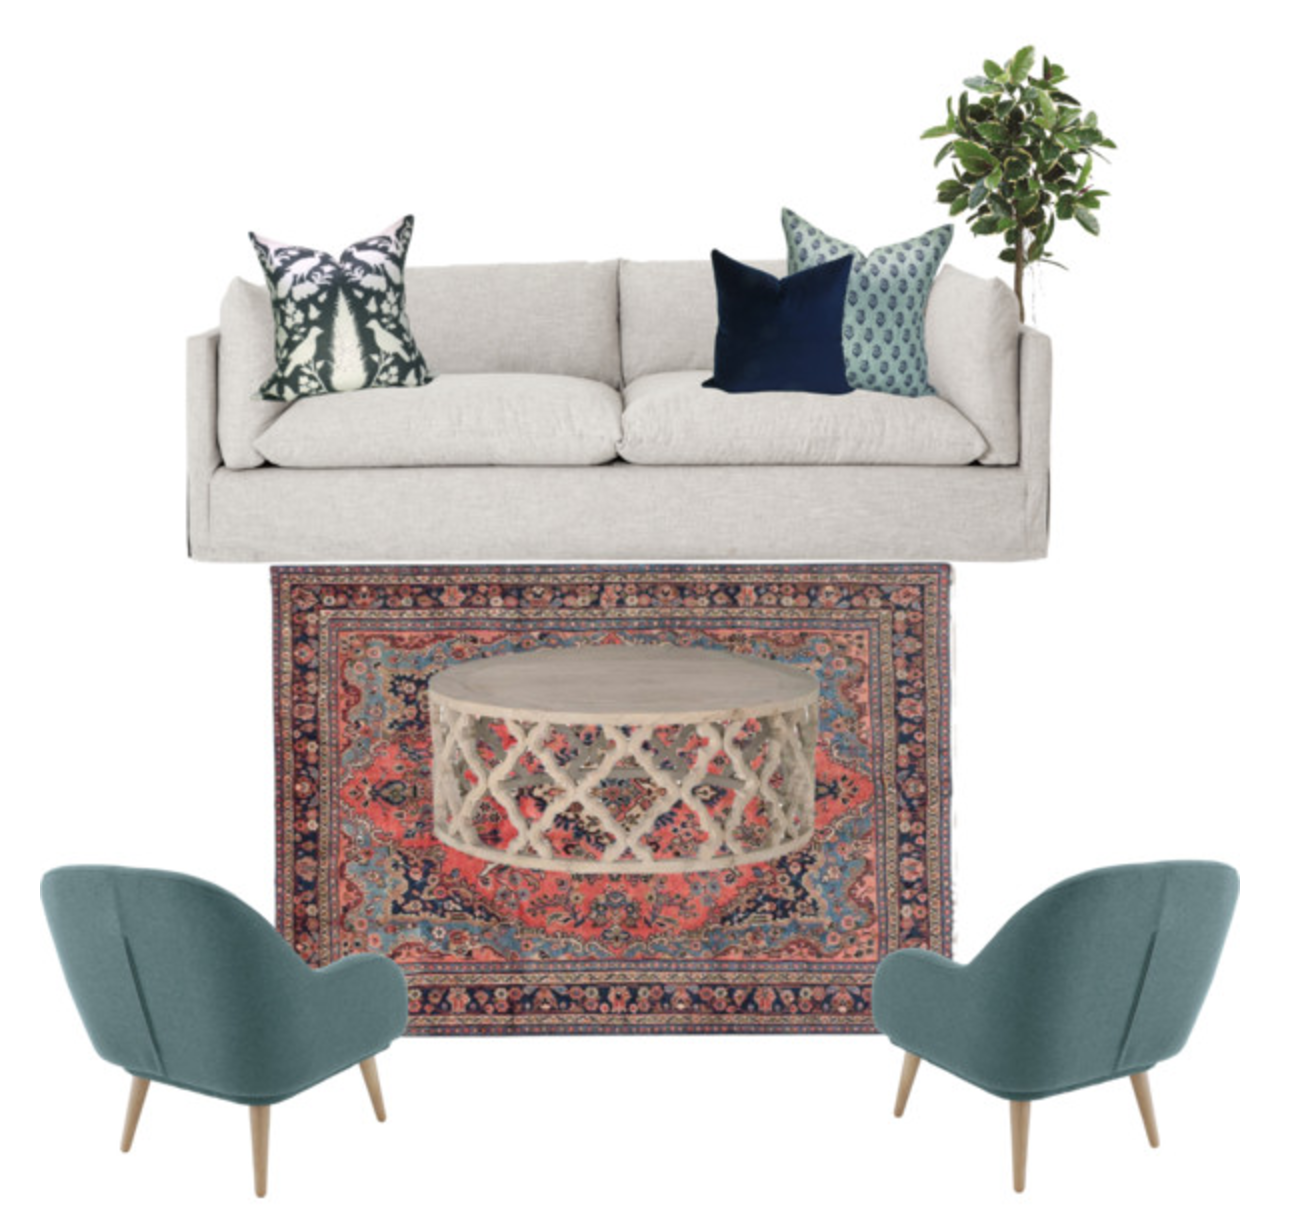 Learn how to place a rug in your space and save your budget! #homedecor #interiordesign #rugplacement